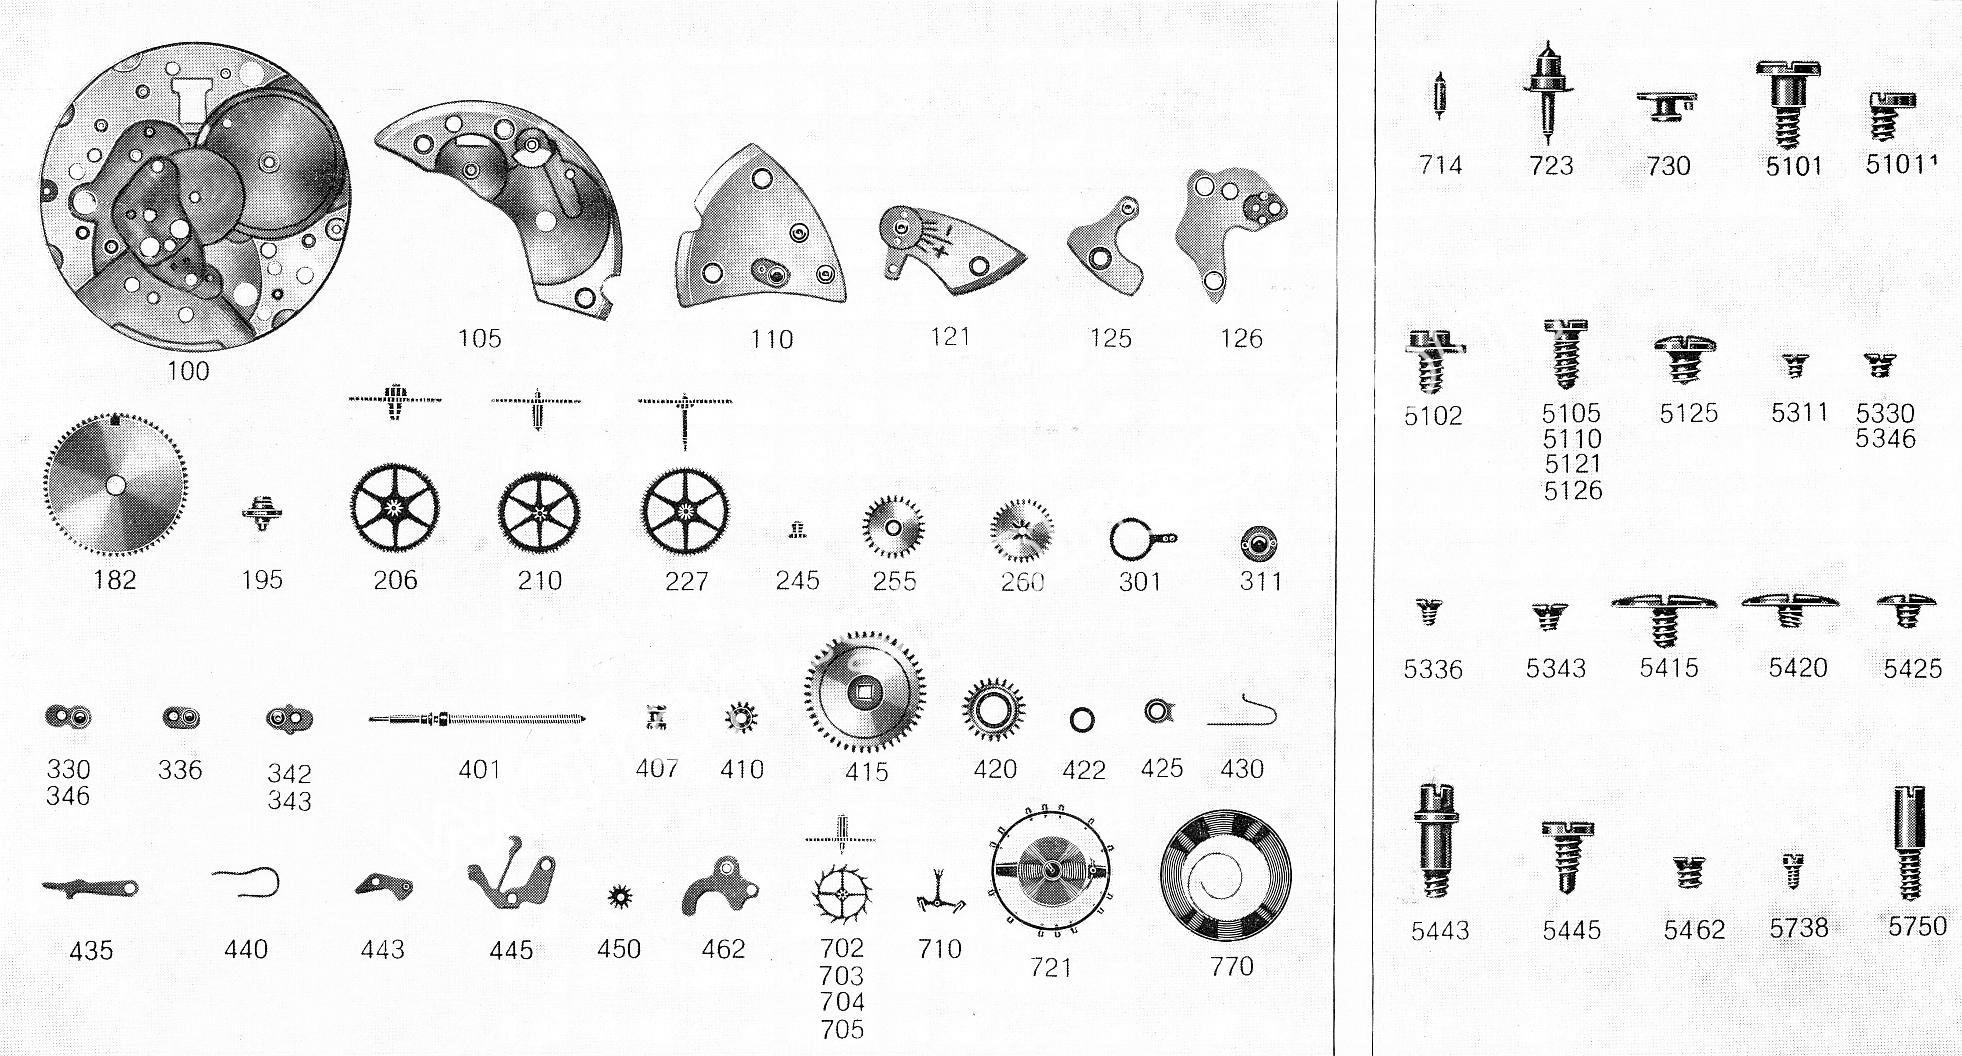 FHF Font 74 watch spare parts